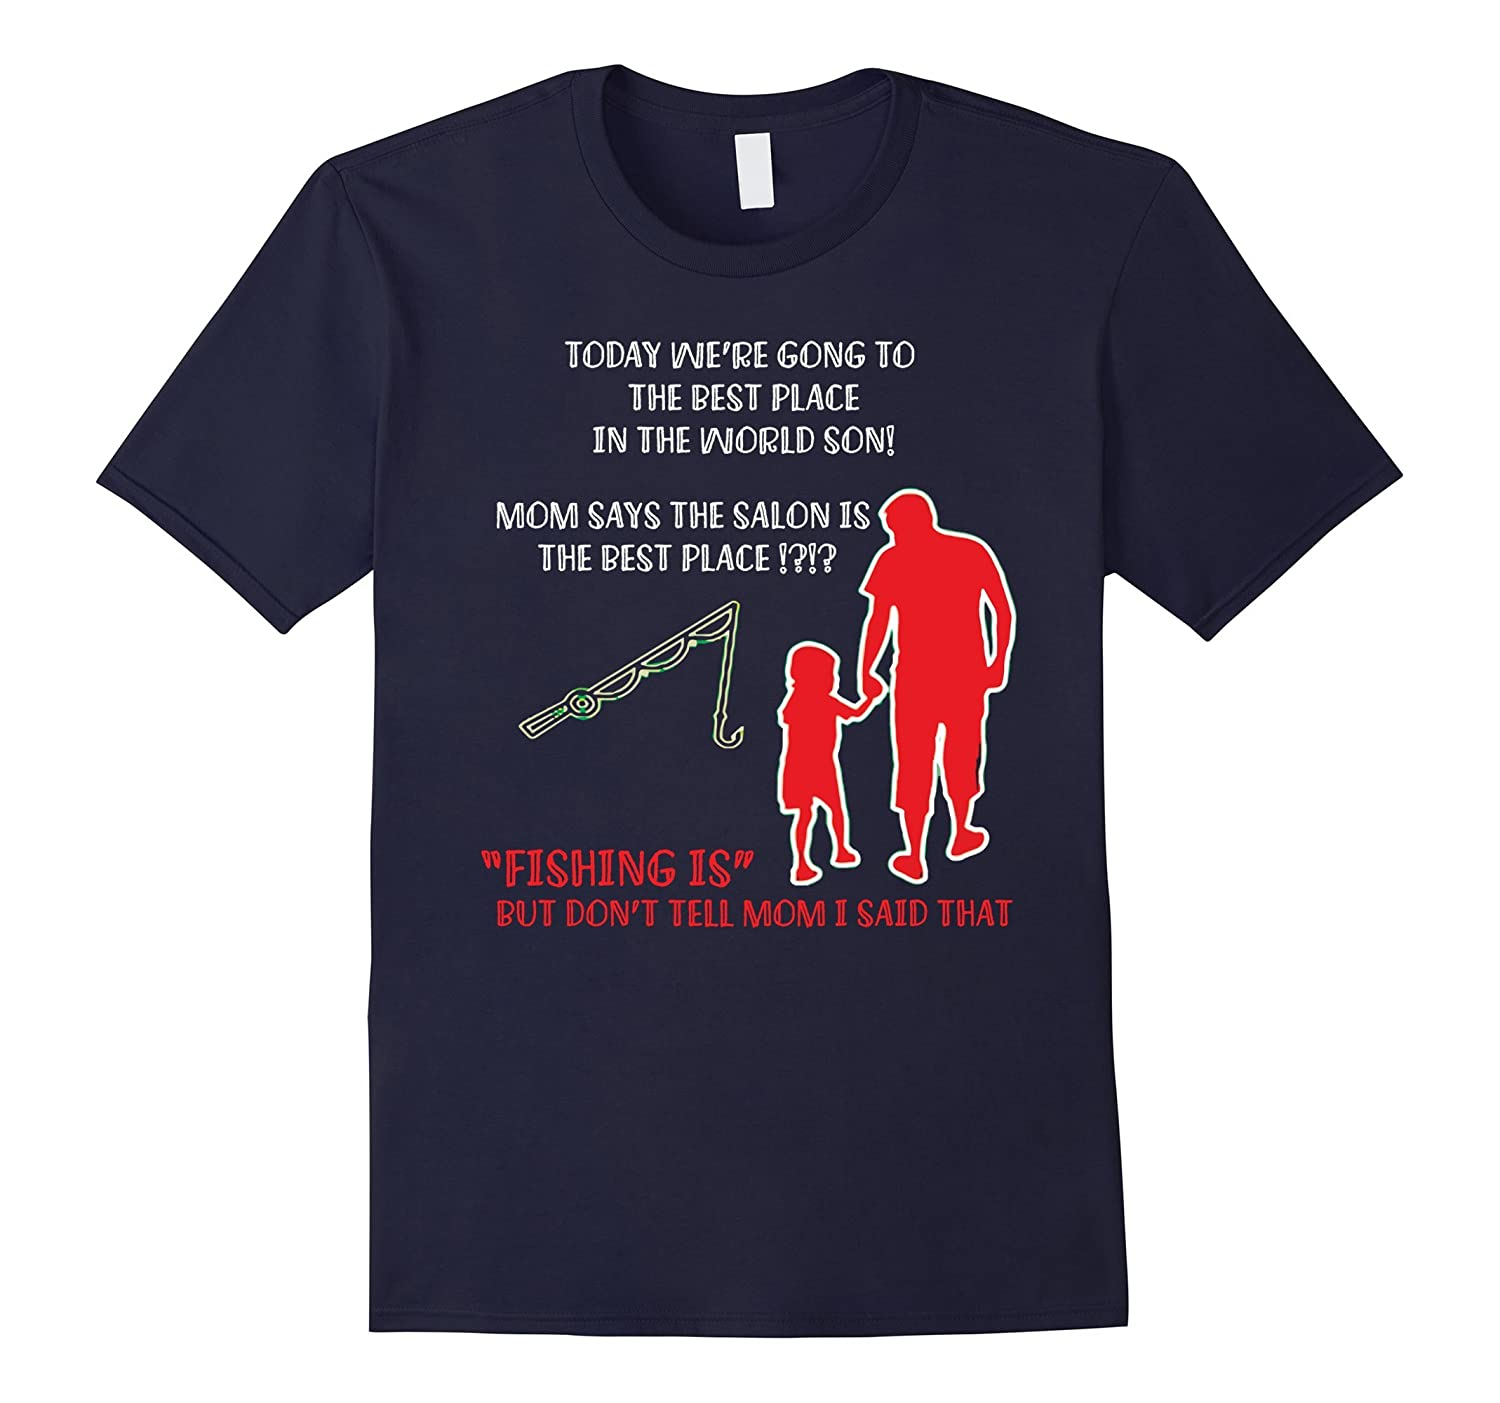 DAD AND SON BEST FRIENDS FOR FISHING LIFE T SHIRT FATHERS DA-CD